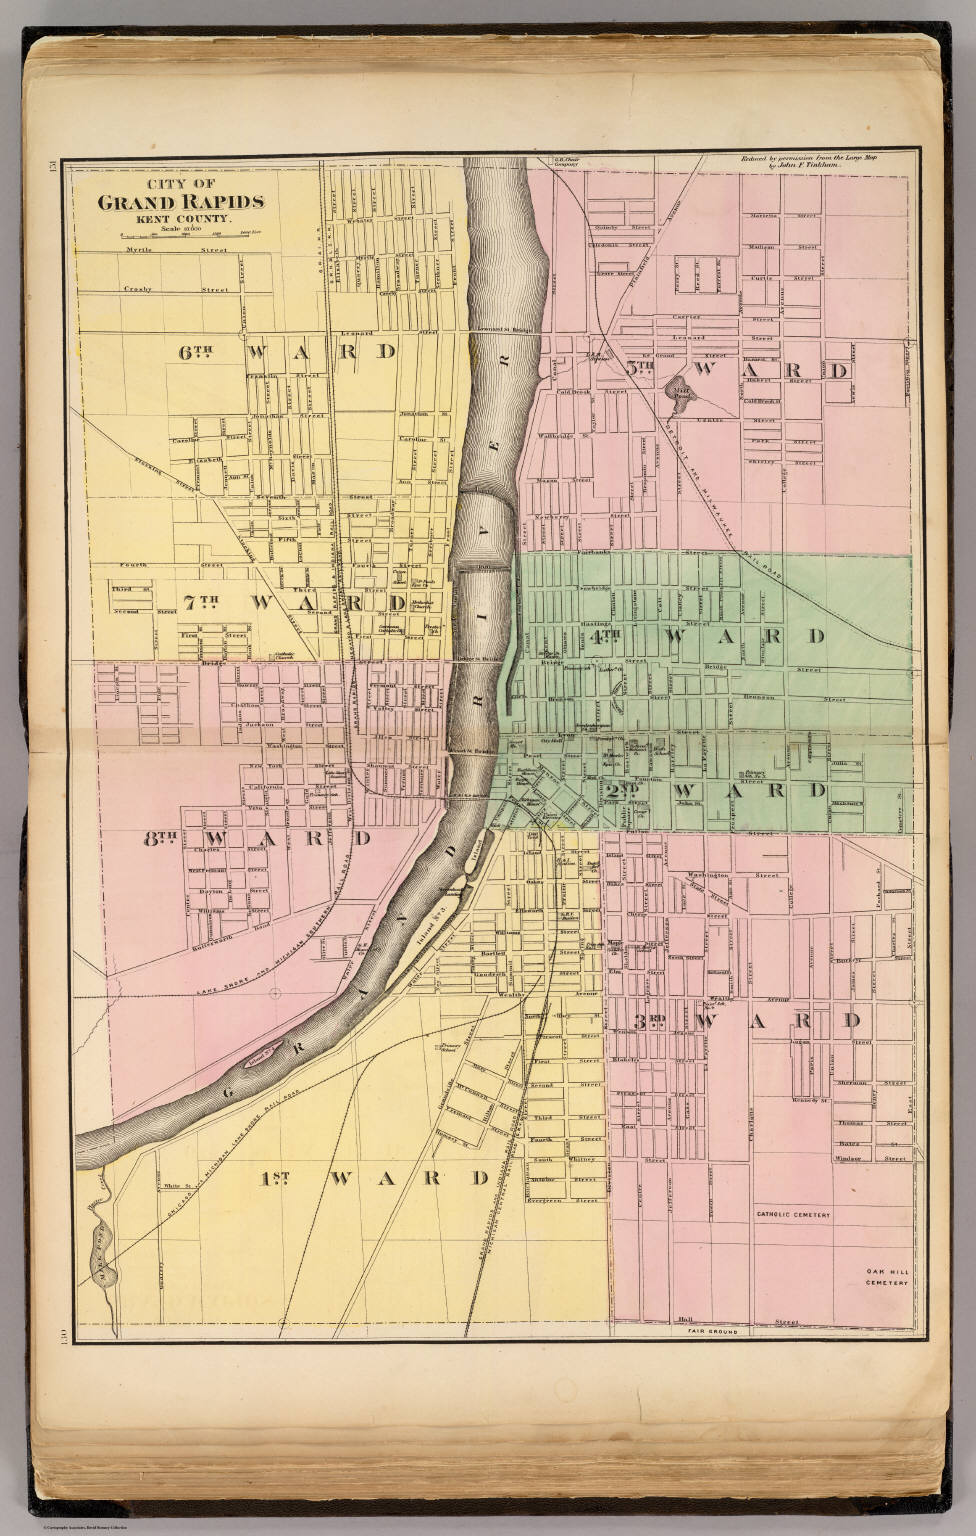 City of Grand Rapids Kent County David Rumsey Historical Map